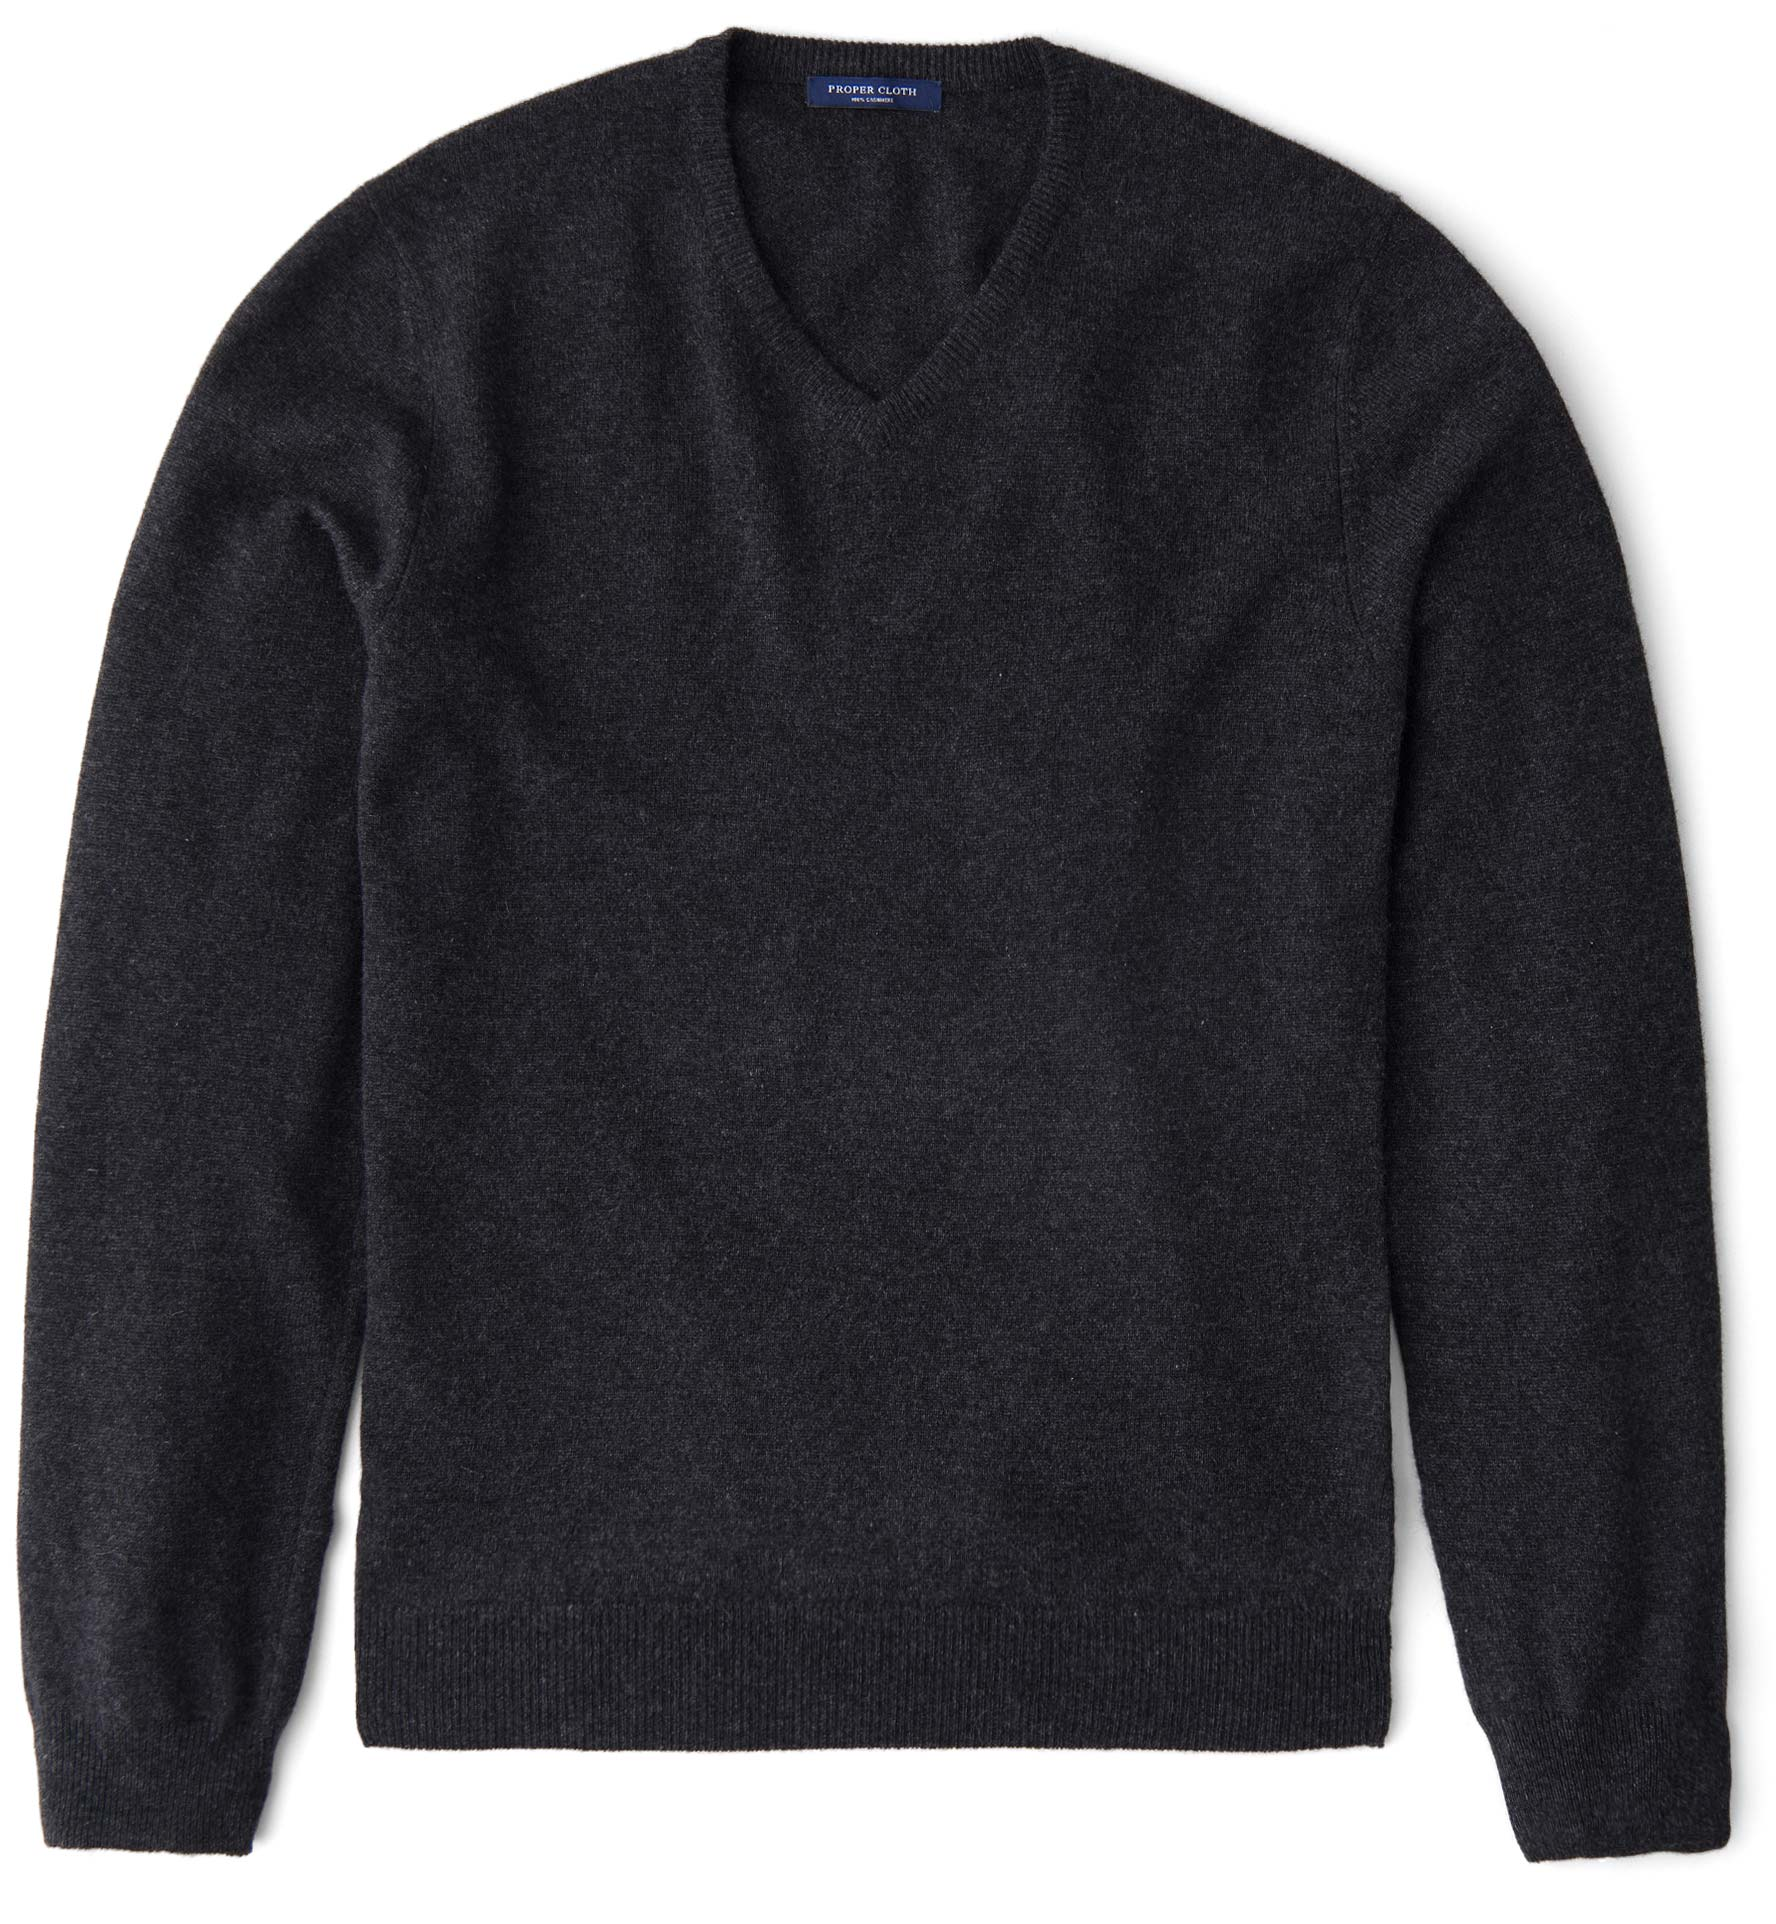 Zoom Image of Charcoal Cashmere V-Neck Sweater